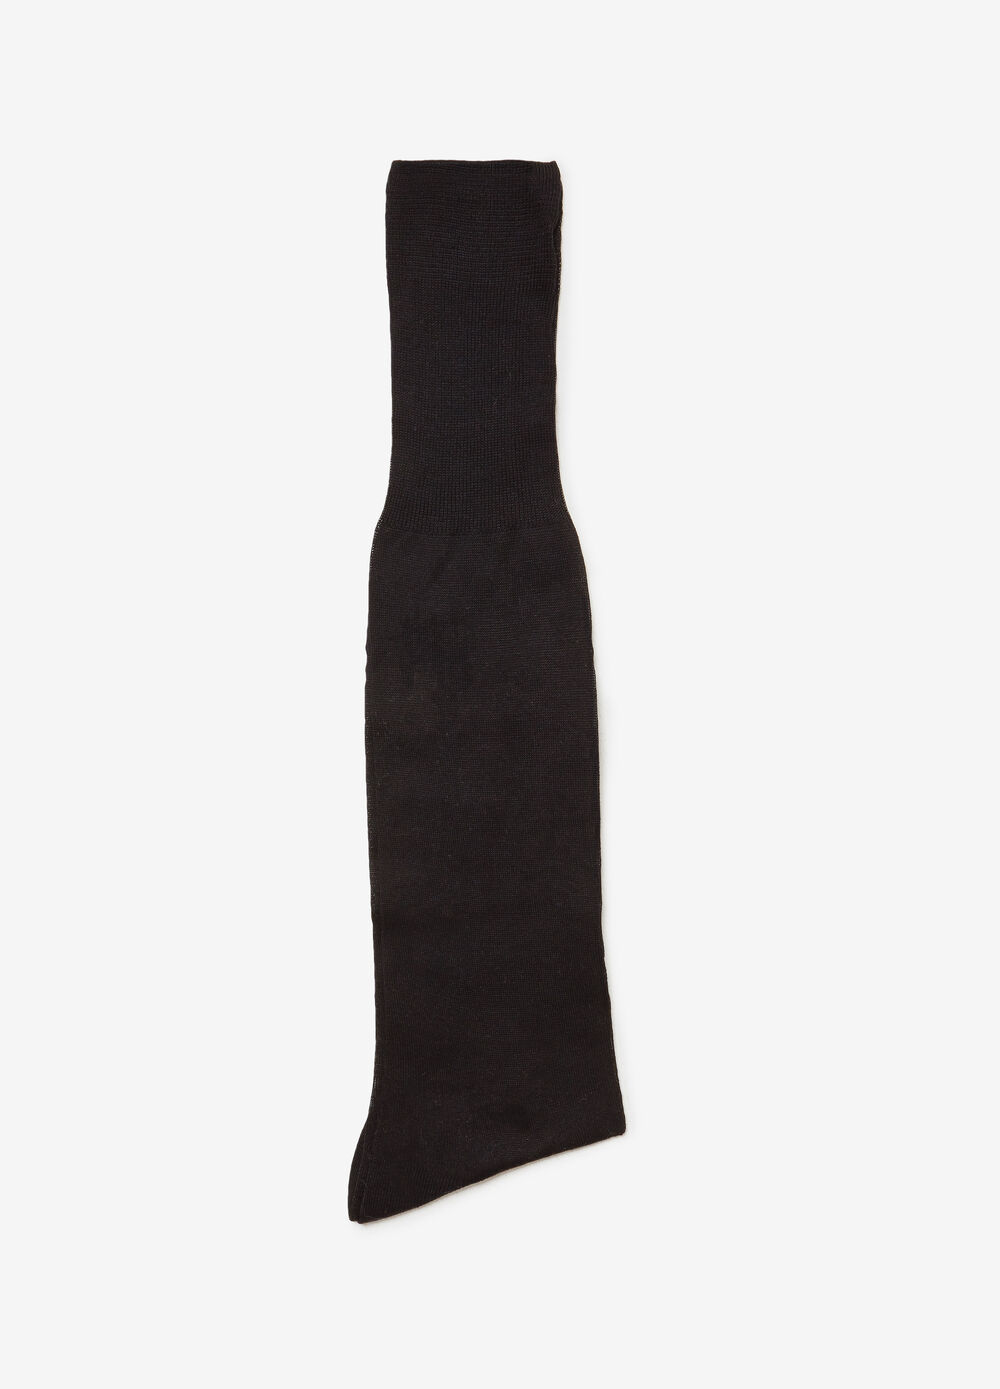 Long solid colour socks in sheared lisle cotton